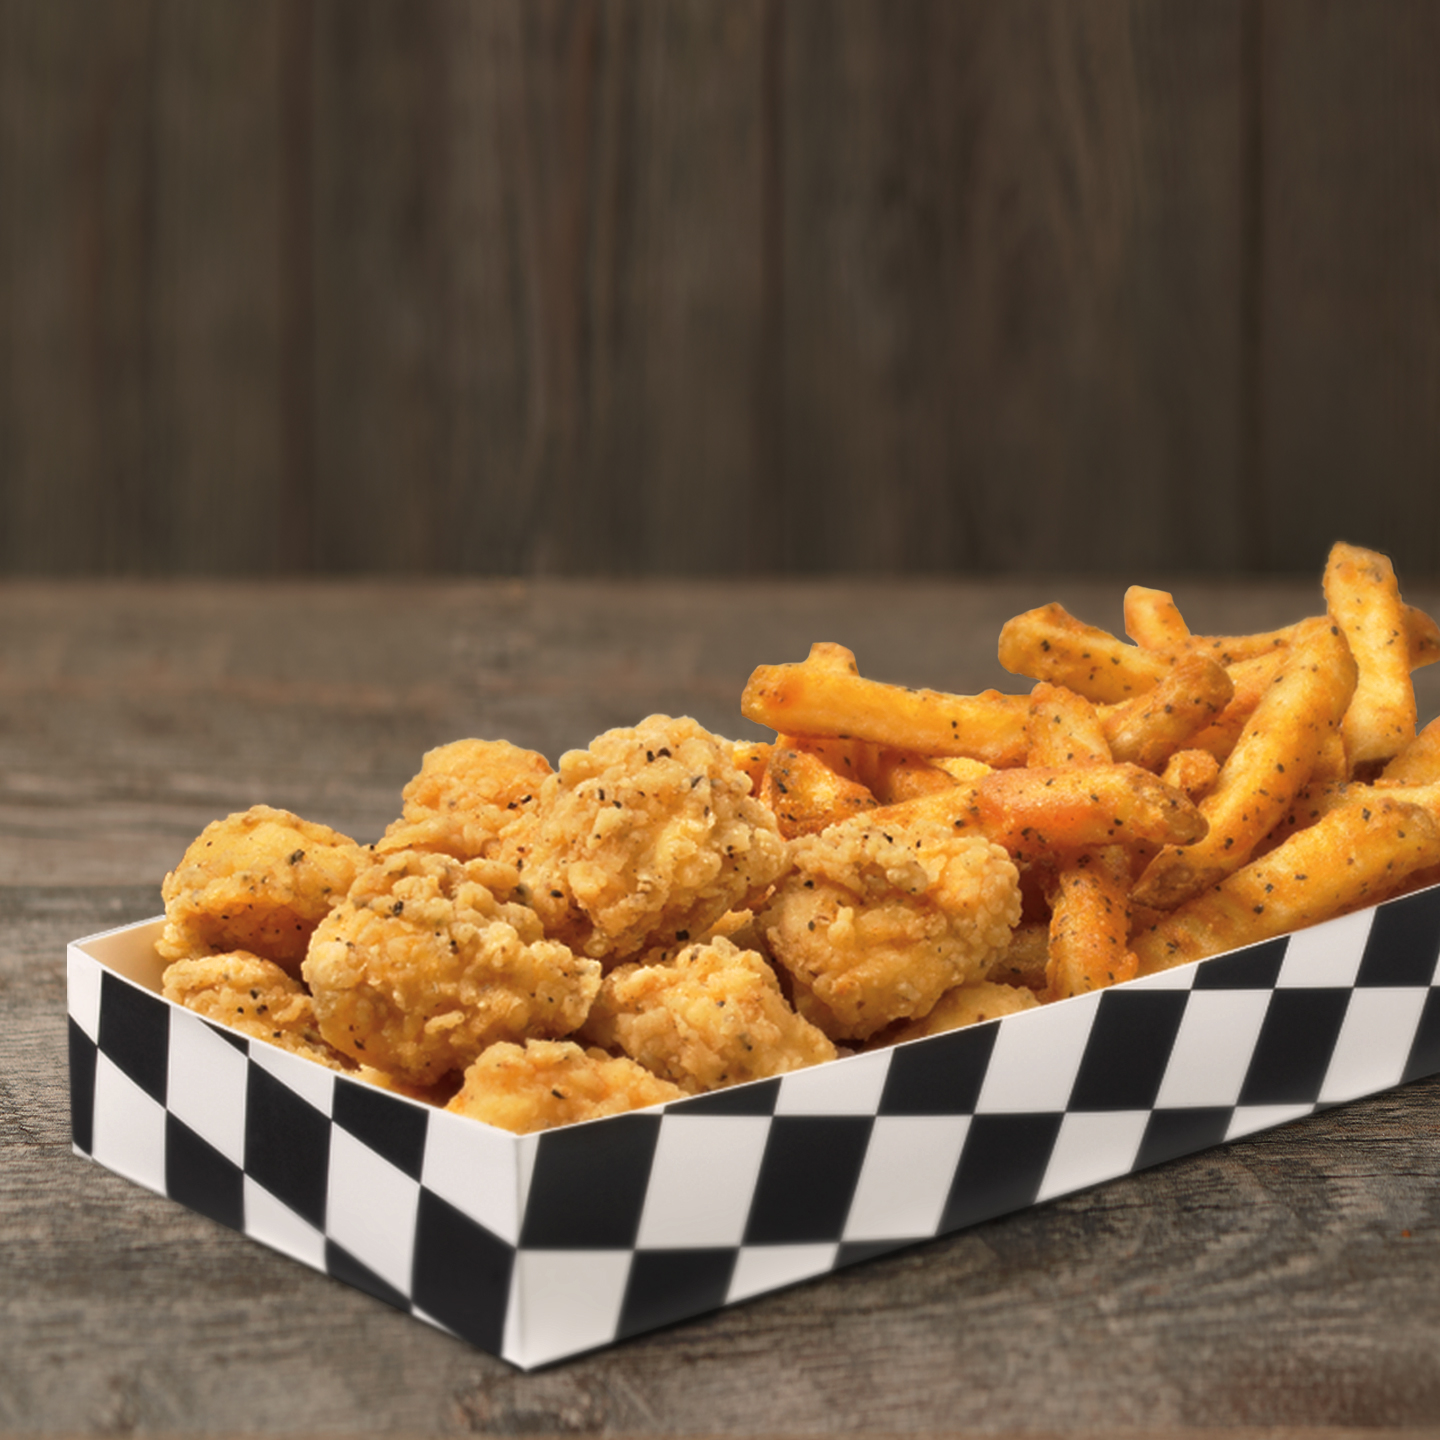 After the very first one of these habit-forming, crispy, juicy, perfectly seasoned, all white meat chicken bites, you'll be obsessing over them. Order them by the half pound, or get them in a box with